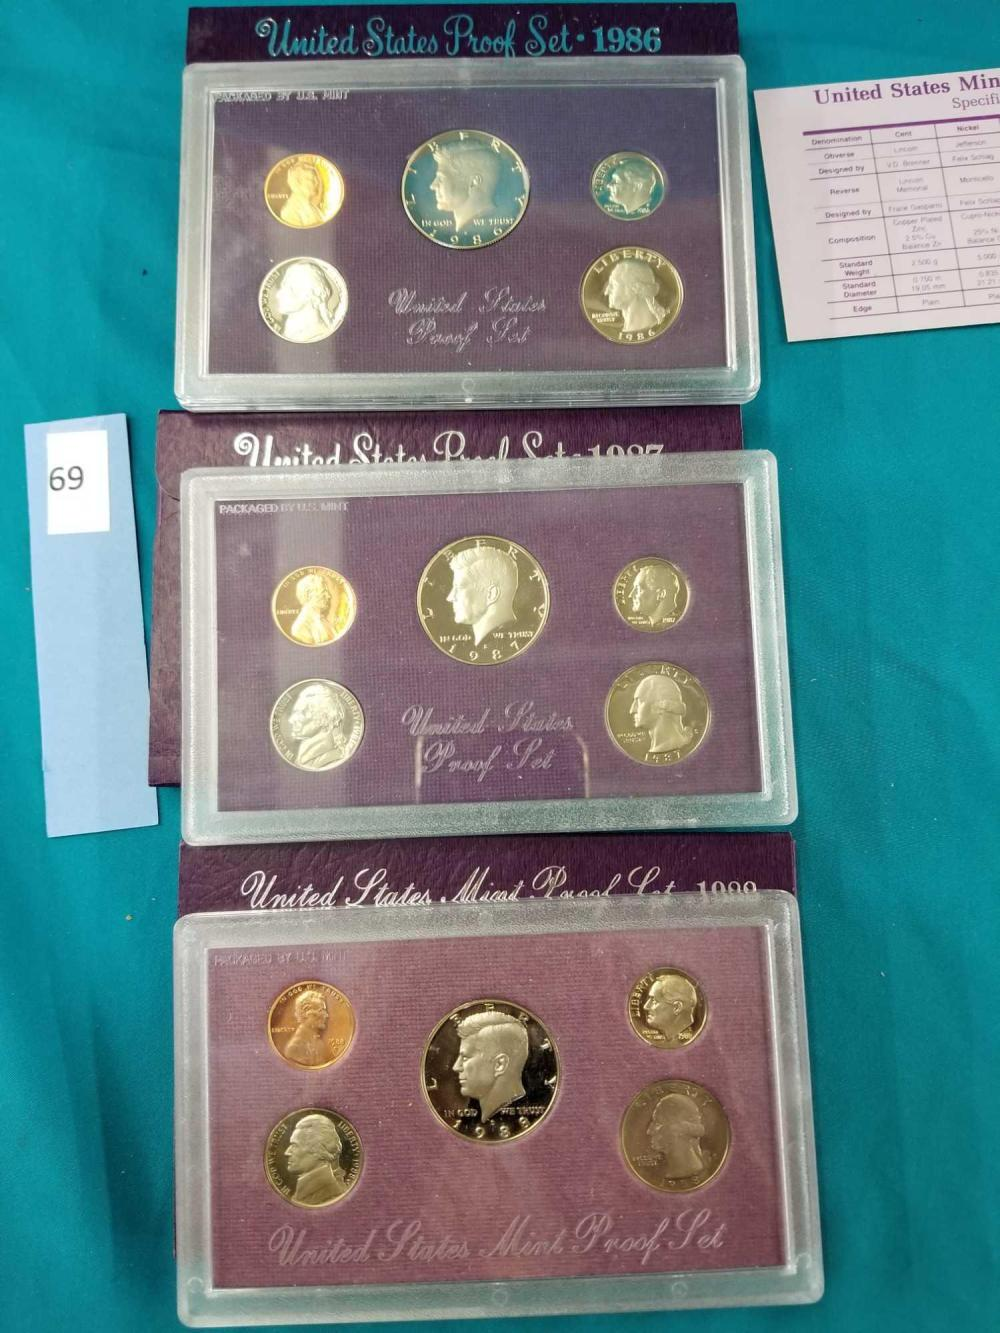 U.S. 1986, 87' & 88' MINT PROOF COIN SETS - 3 ITEMS